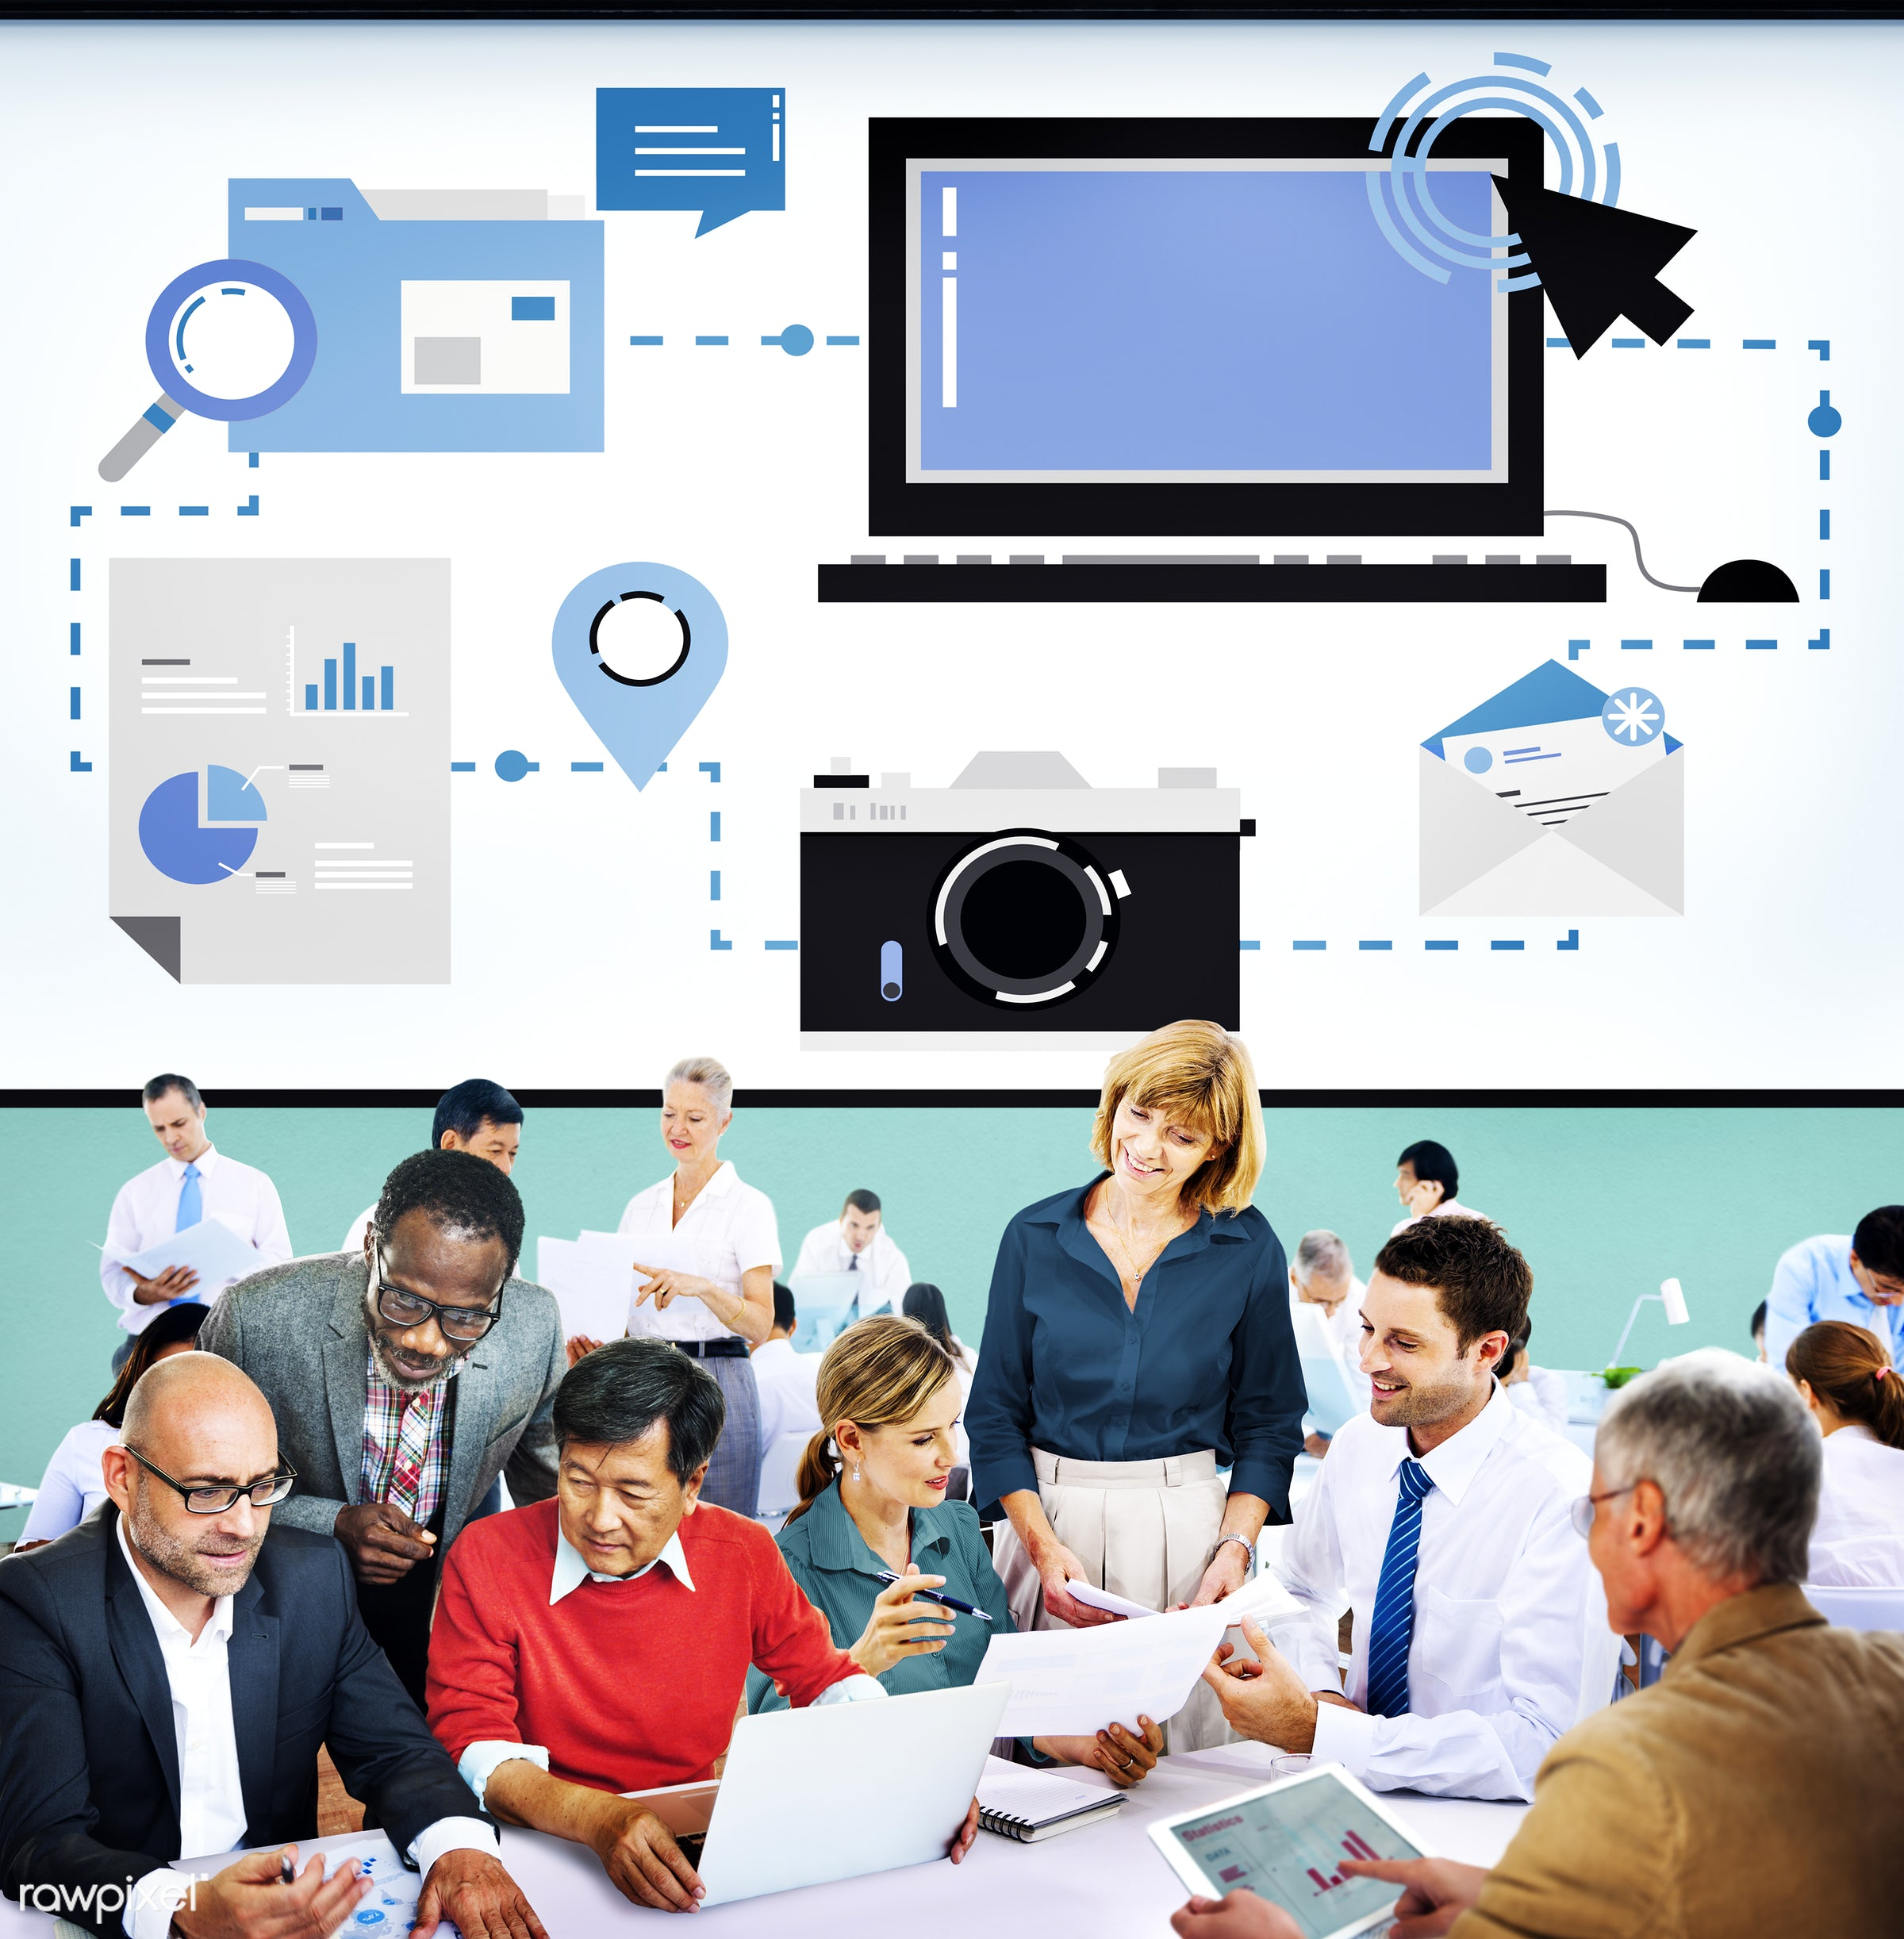 analysis, business, business people, businessmen, businesswomen, busy, communication, computer, connect, connection,...